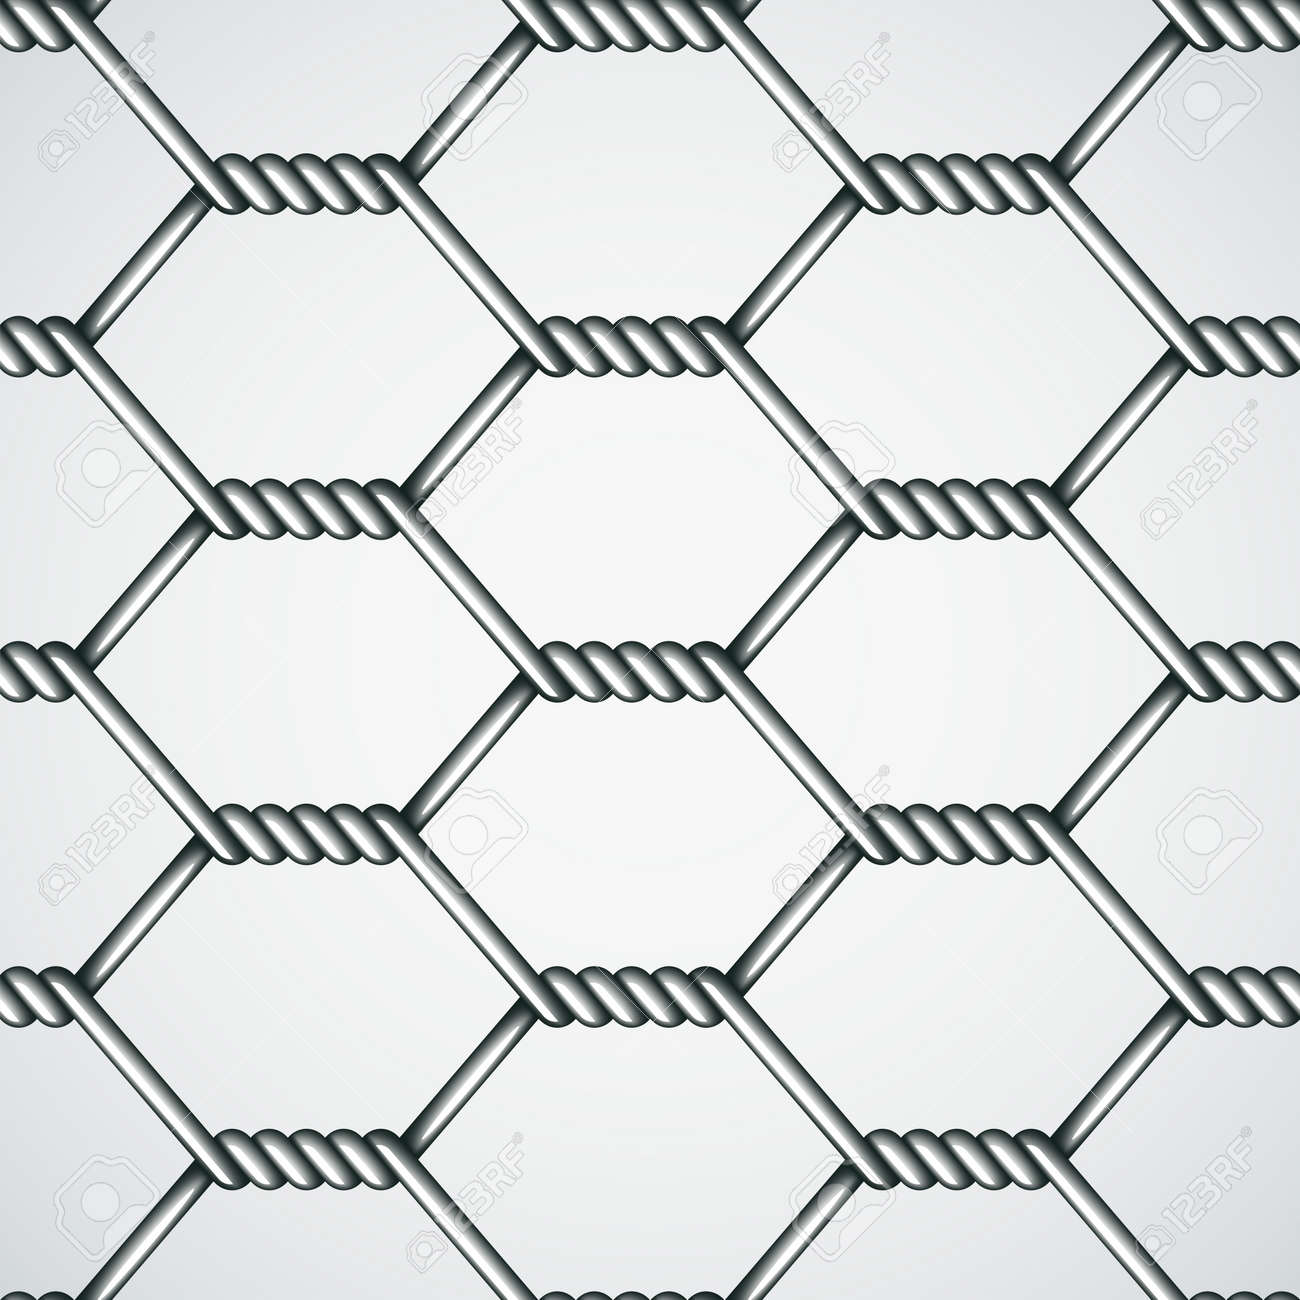 Vector Chicken Wire Seamless Background Royalty Free Cliparts ...